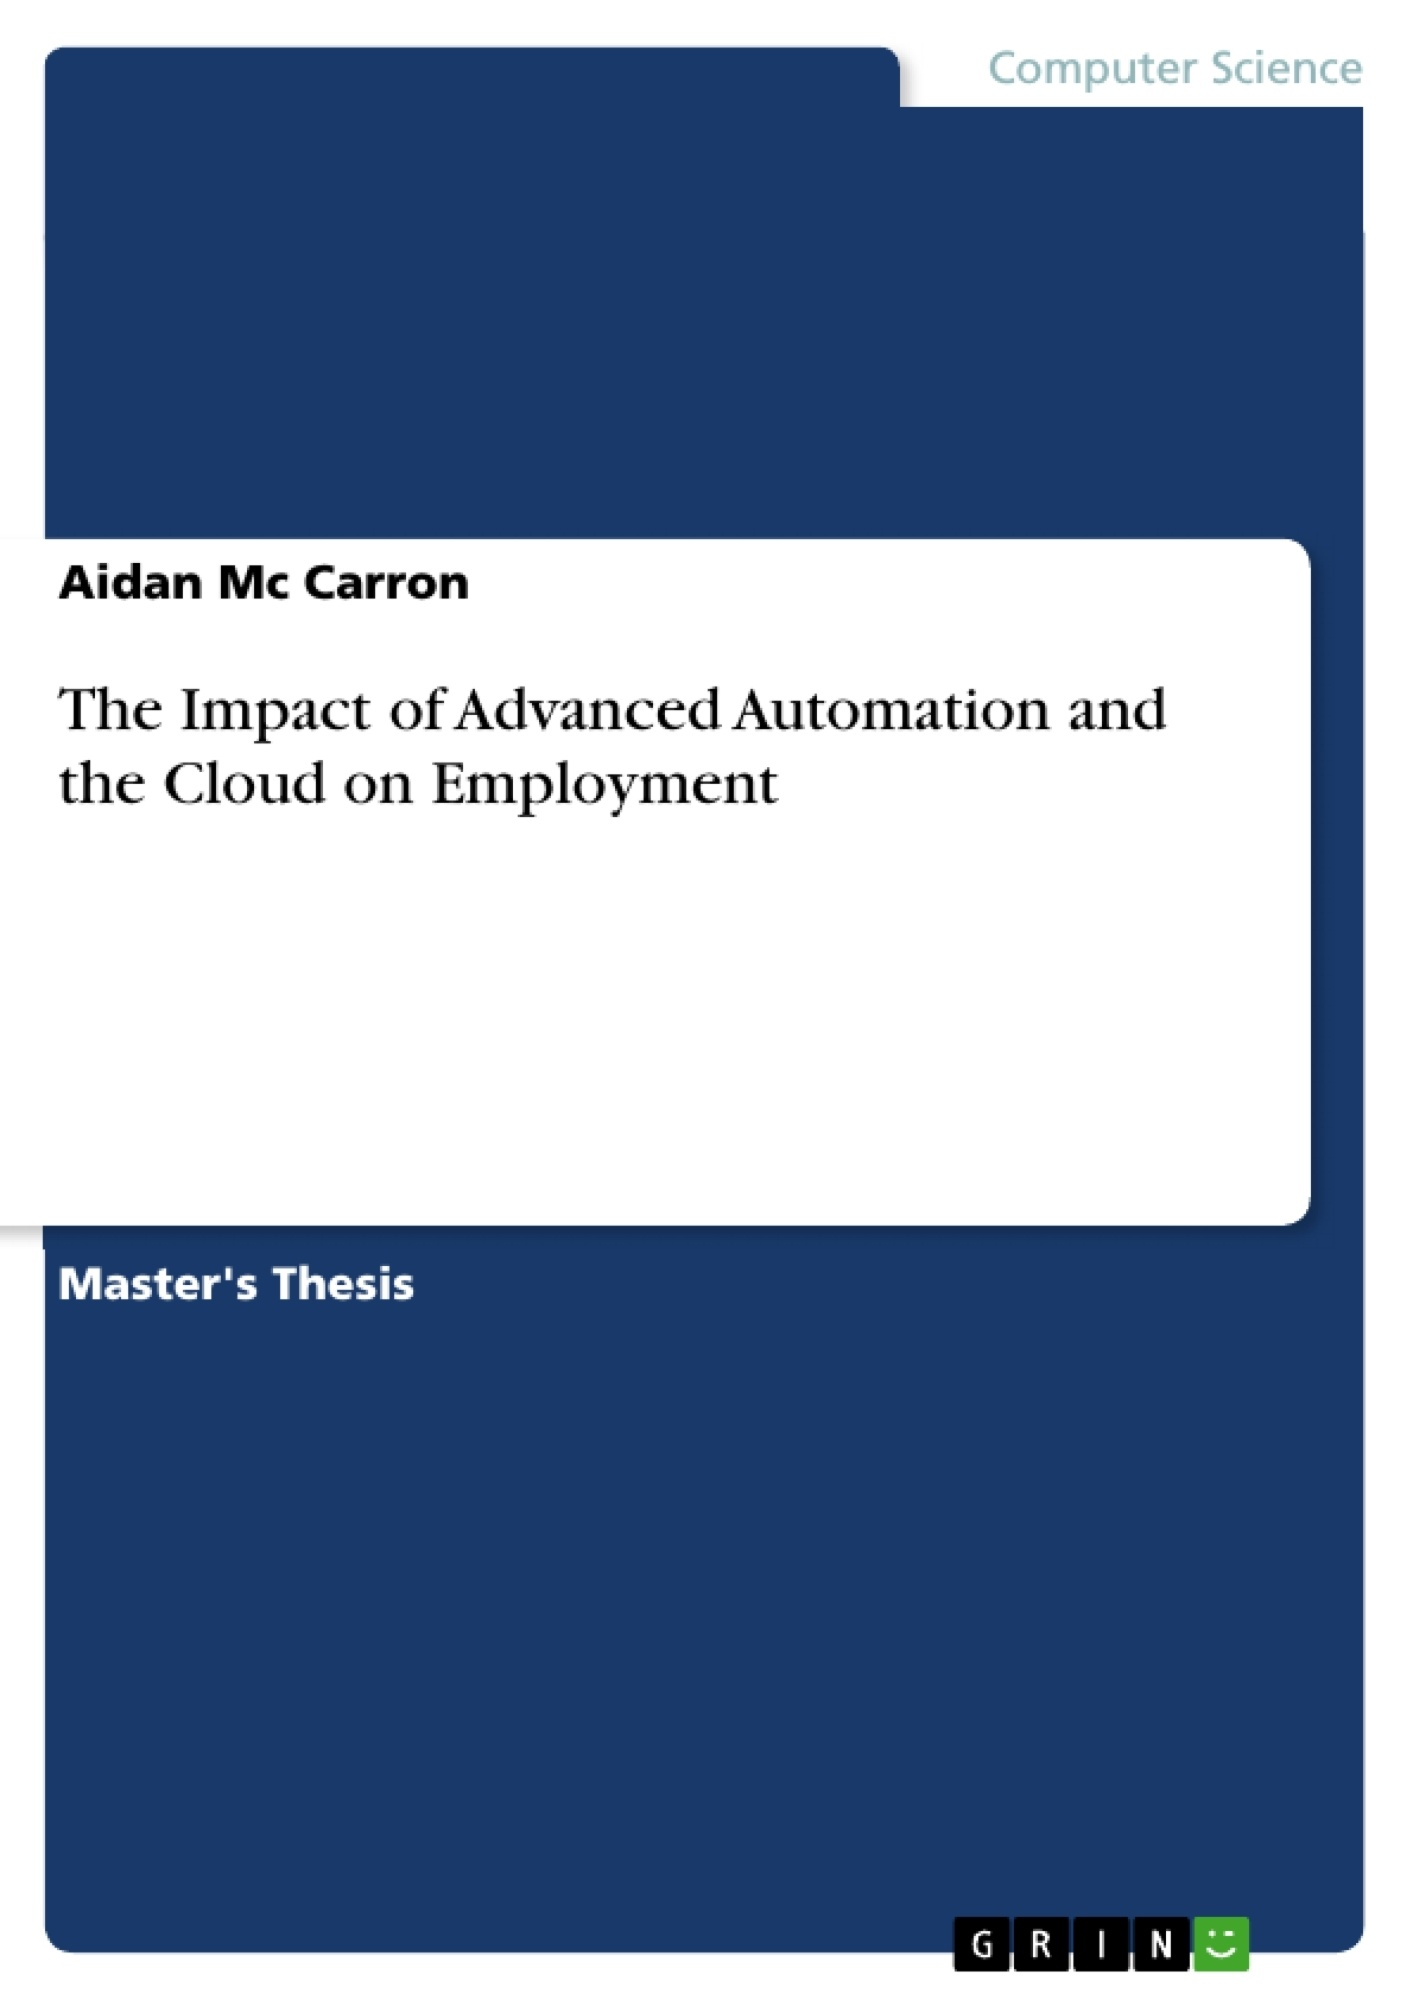 Title: The Impact of Advanced Automation and the Cloud on Employment